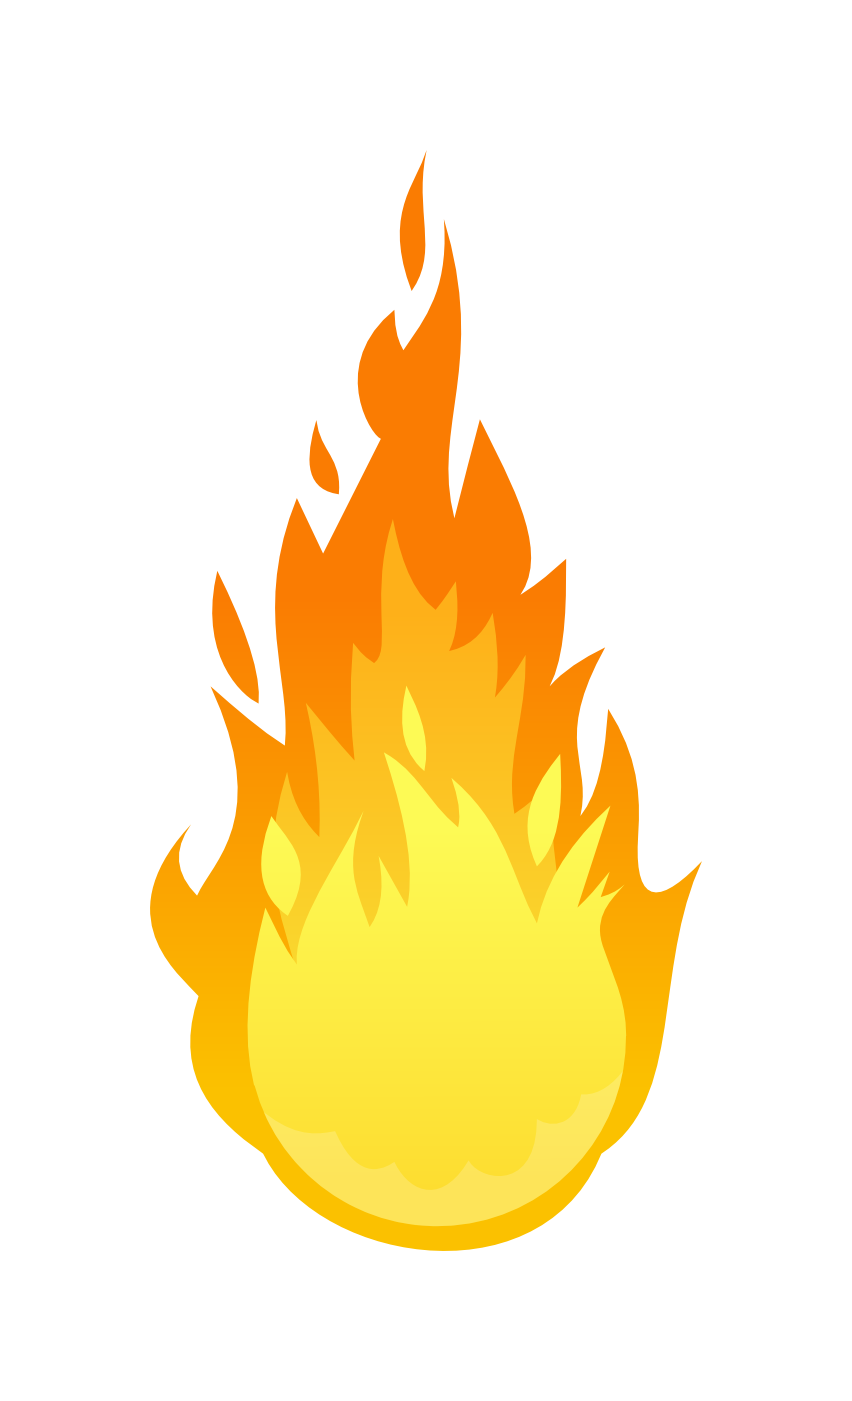 Flame clipart baseball. On fire image library